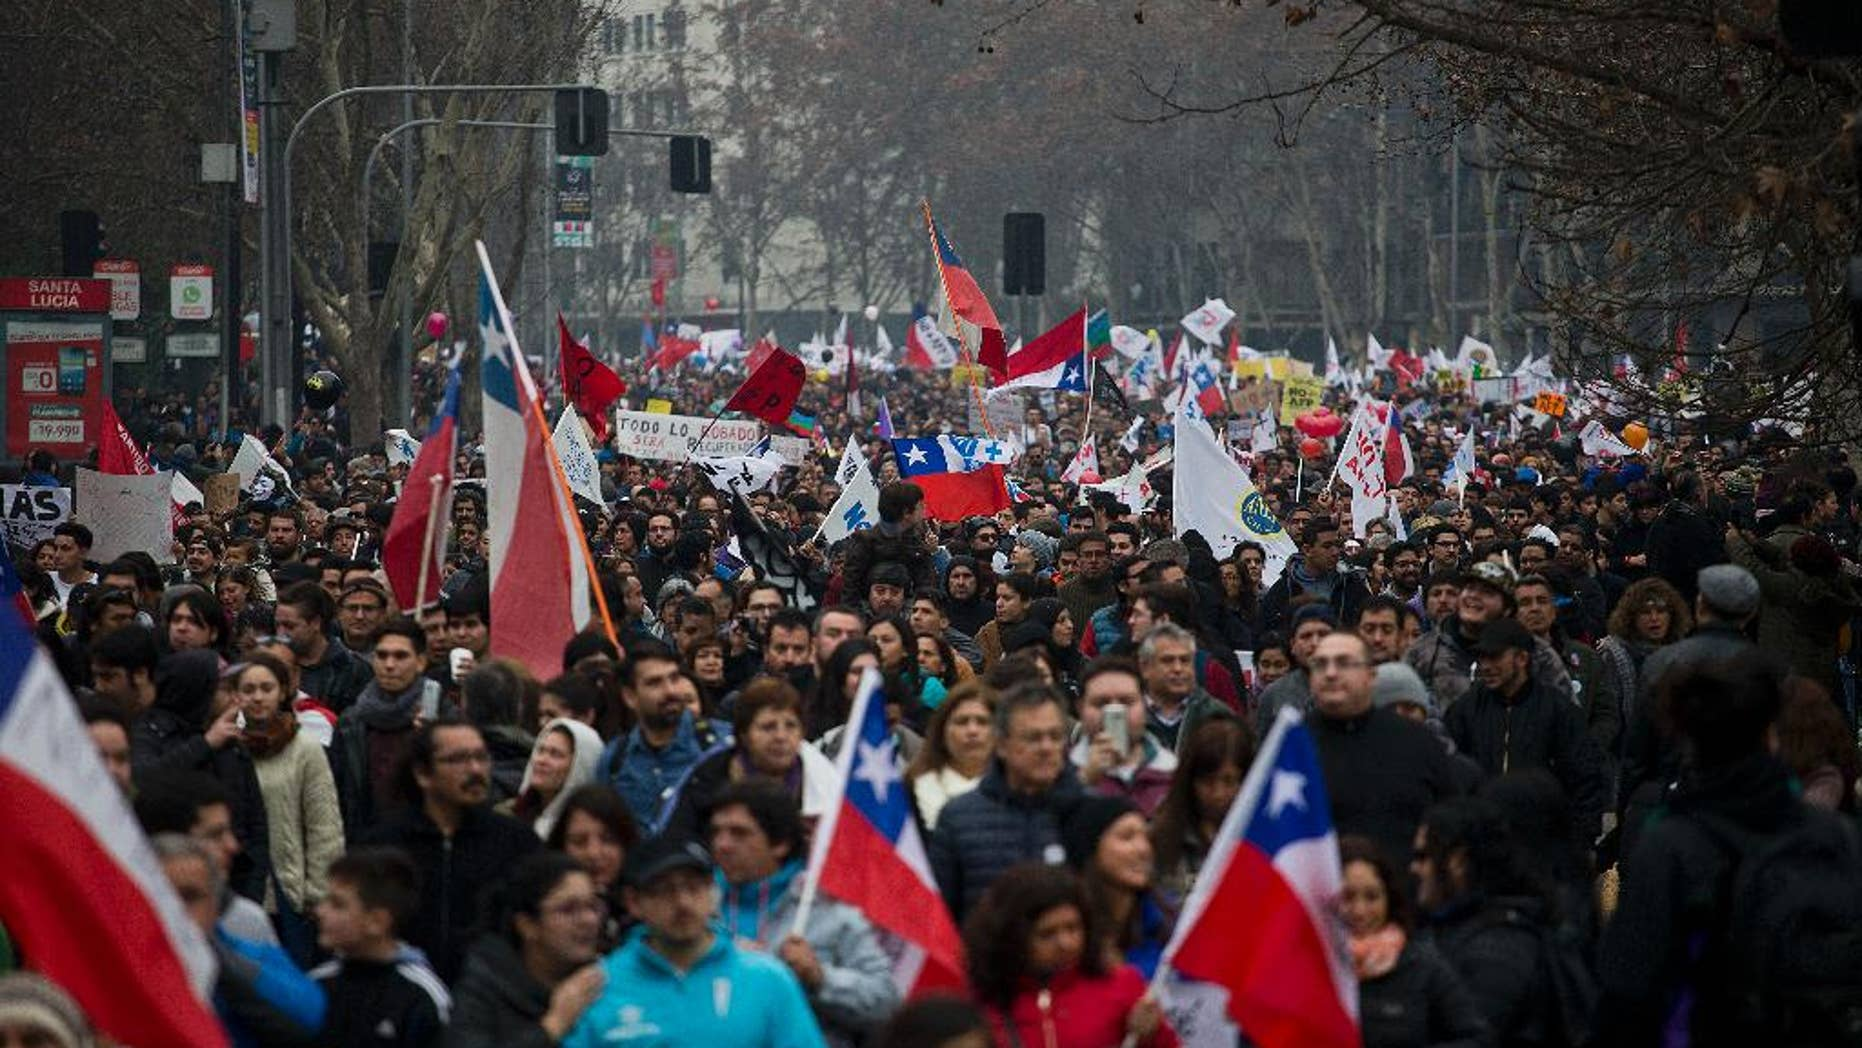 Thousands of workers march against the Pension Fund Administrators demanding an end to the system due to low pensions, in Santiago, Chile, Sunday, July 24, 2016. There were demonstrations and marches in several other cities in the conuntry. (AP Photo/Esteban Felix)